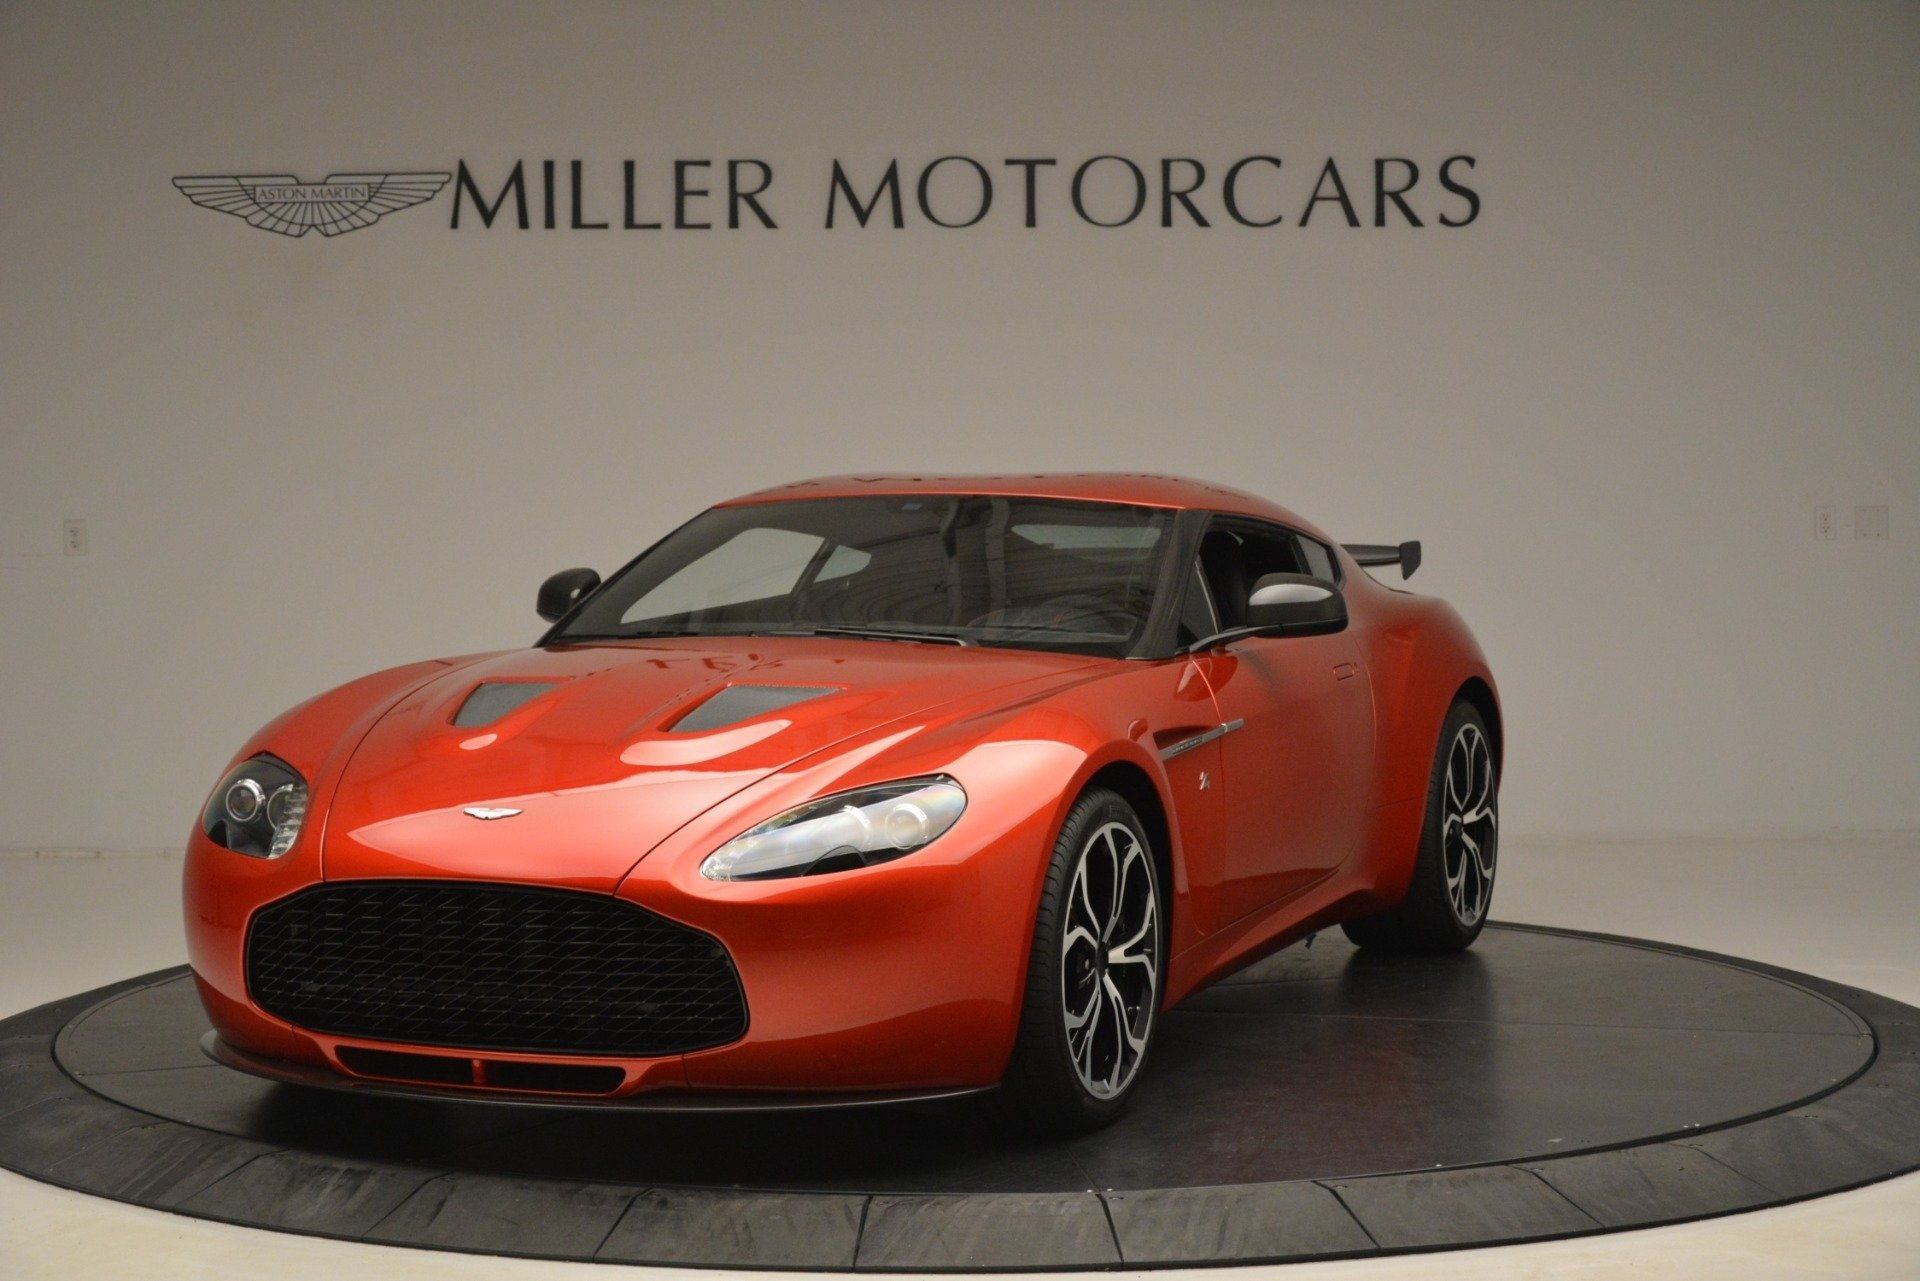 Used 2013 Aston Martin V12 Zagato Coupe for sale Call for price at Bentley Greenwich in Greenwich CT 06830 1